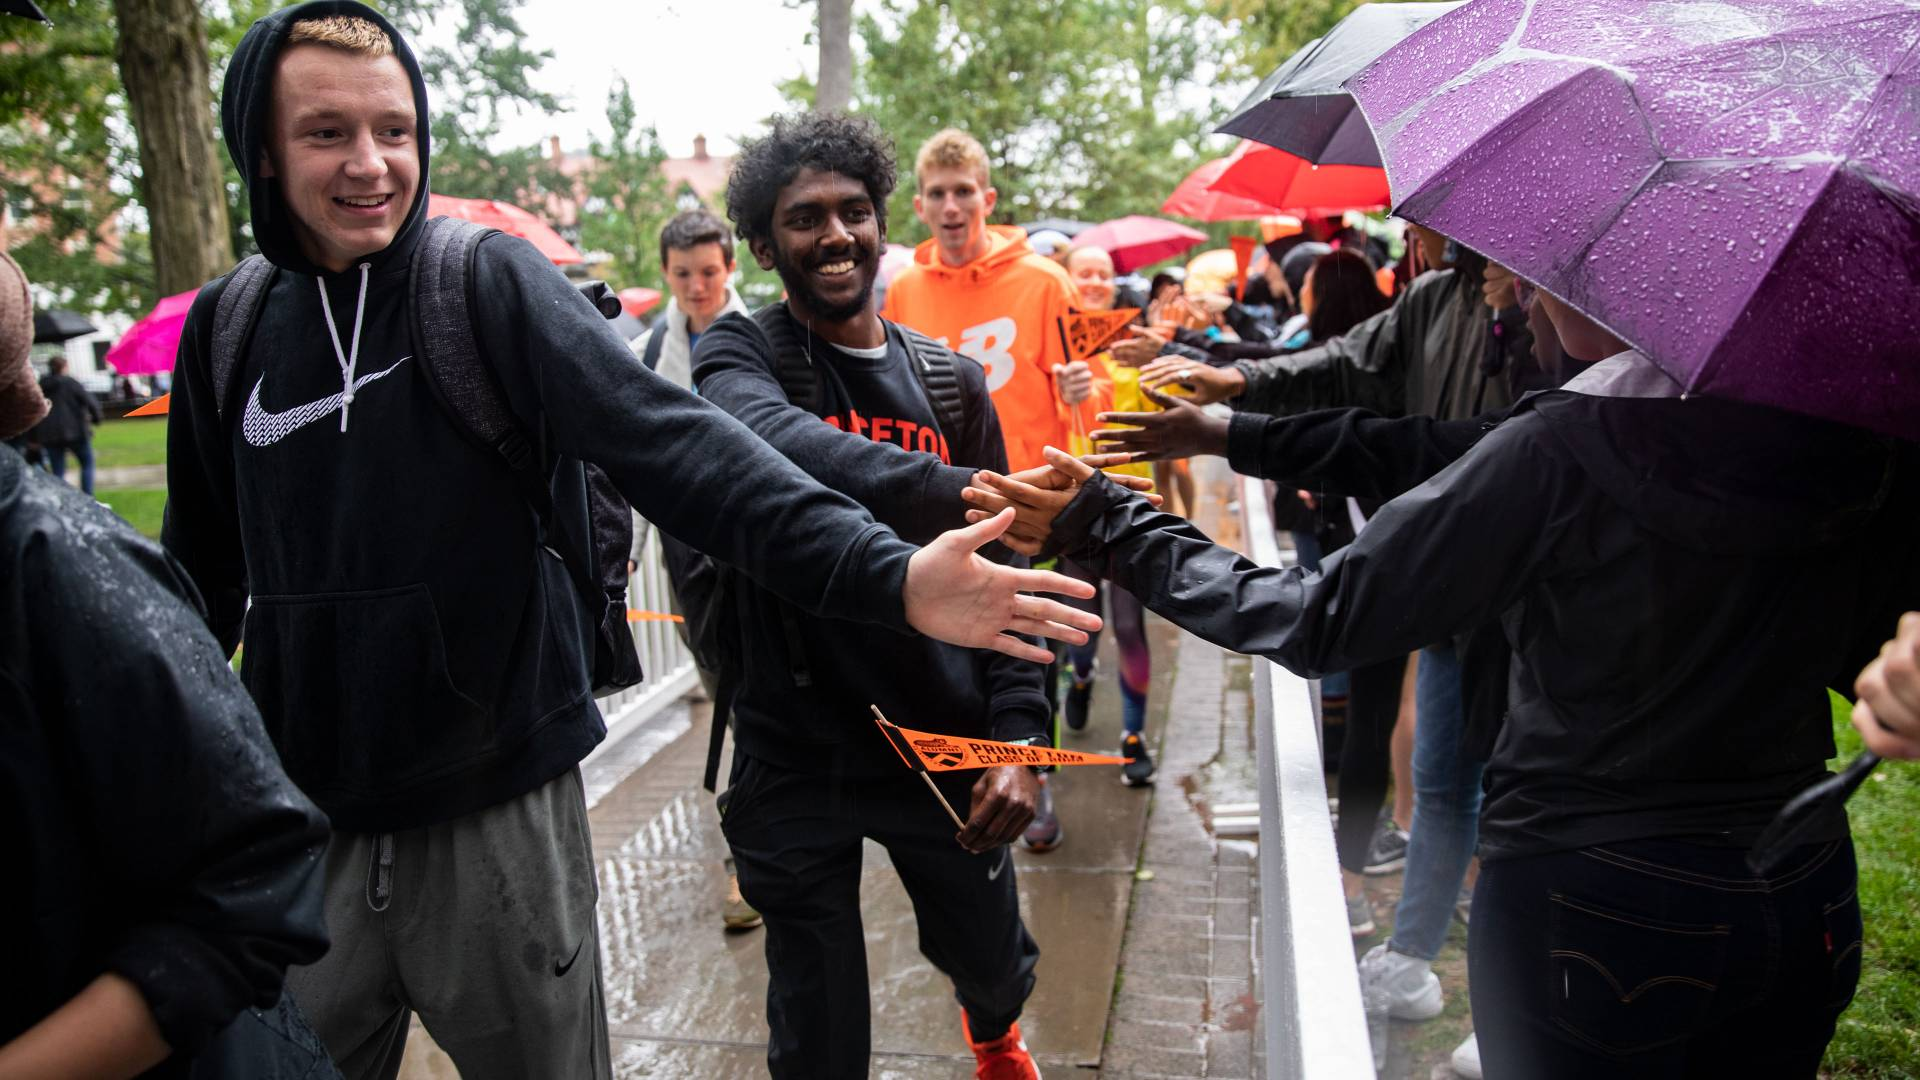 Students high-fiveing during Pre-rade